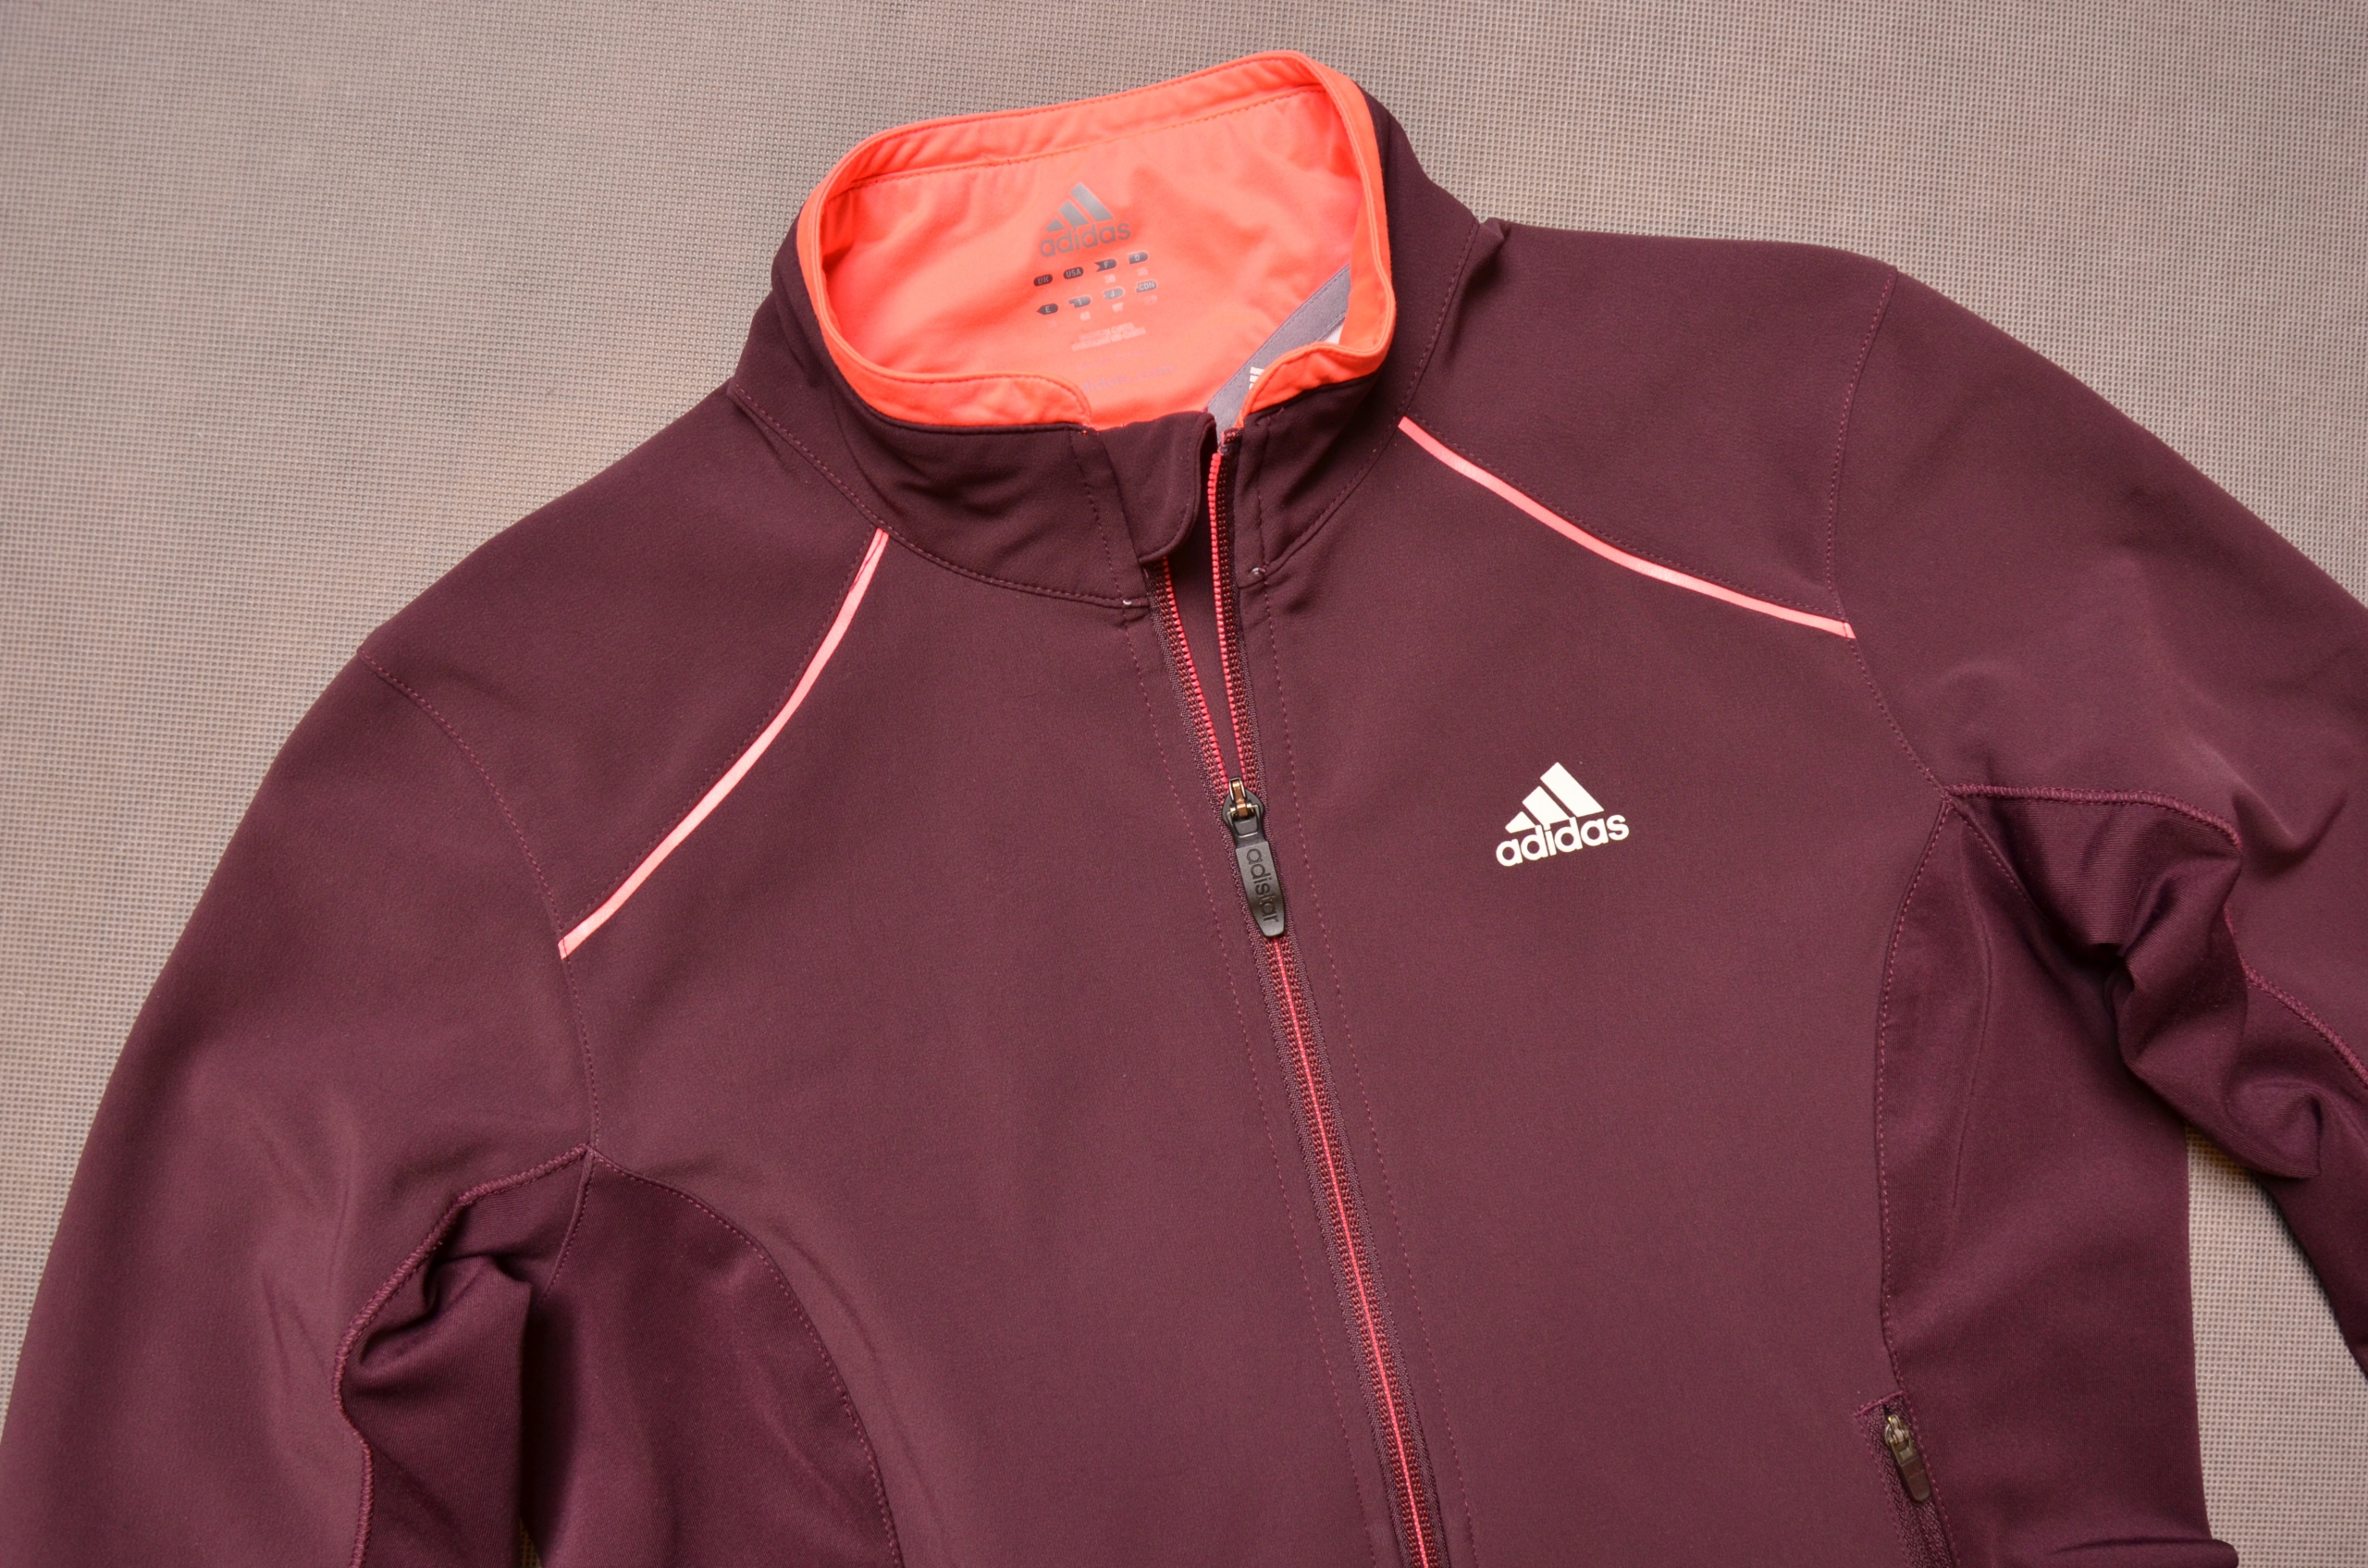 ADIDAS RUNNING WINDSTOPPER SOFTSHELL ADISTAR 36 S